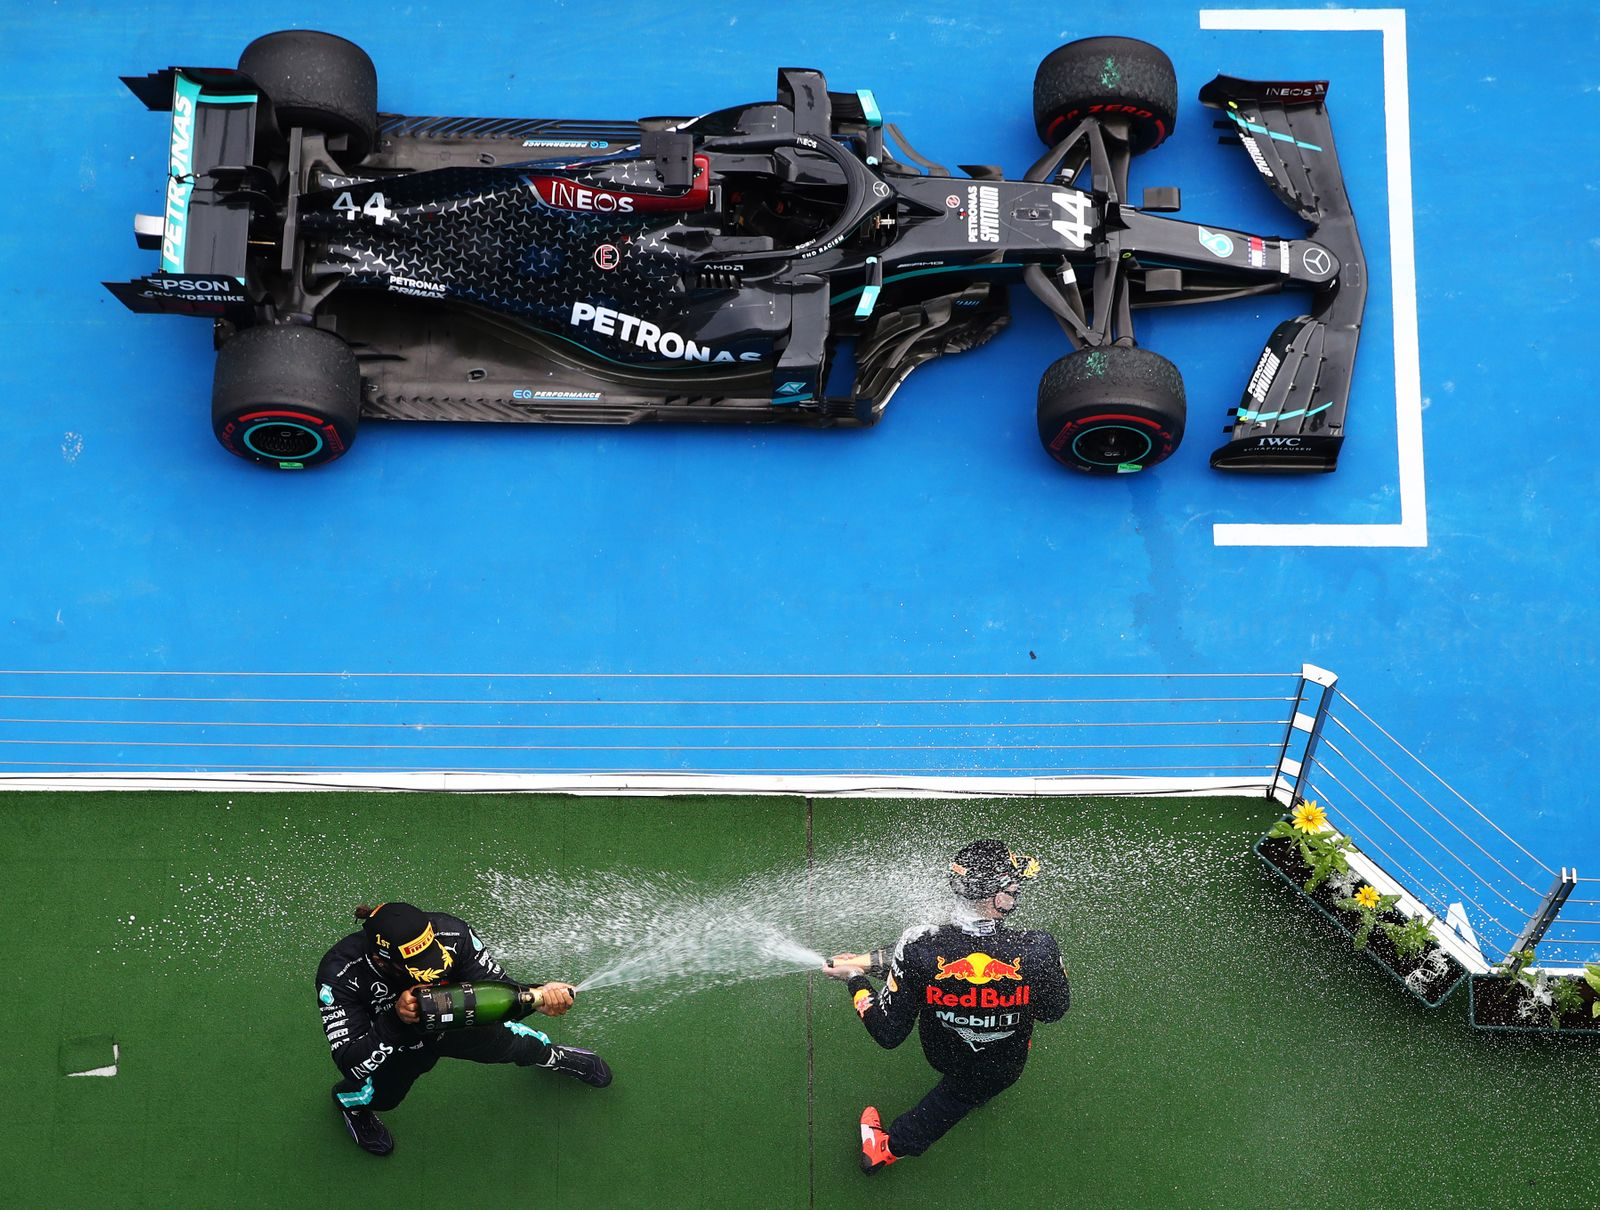 European Best Pictures Of The Day - July 19 F1 Grand Prix of Hungary